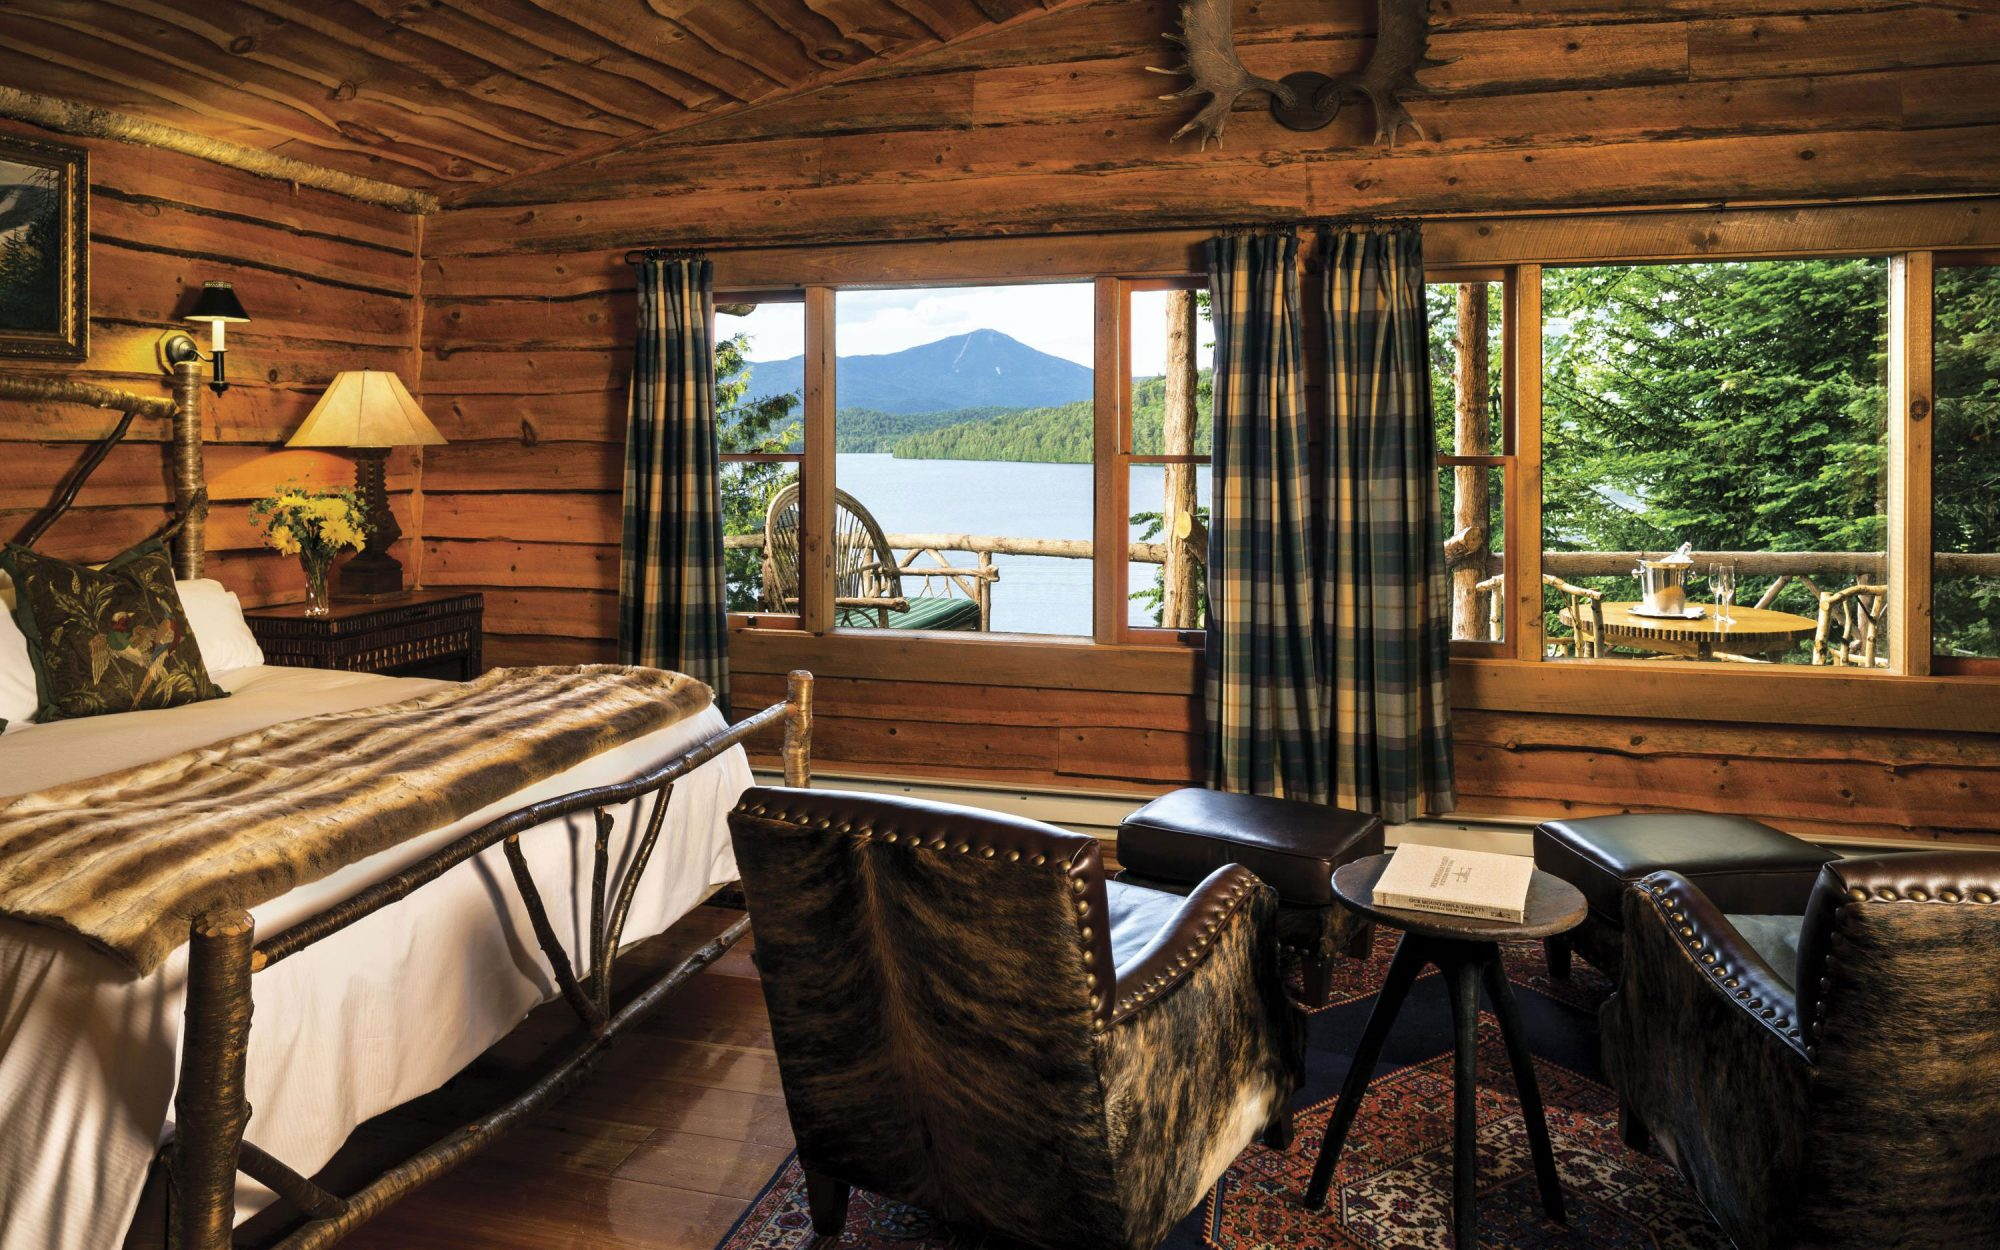 Best Hotels in the U.S.: Lake Placid Lodge, Lake Placid, New York